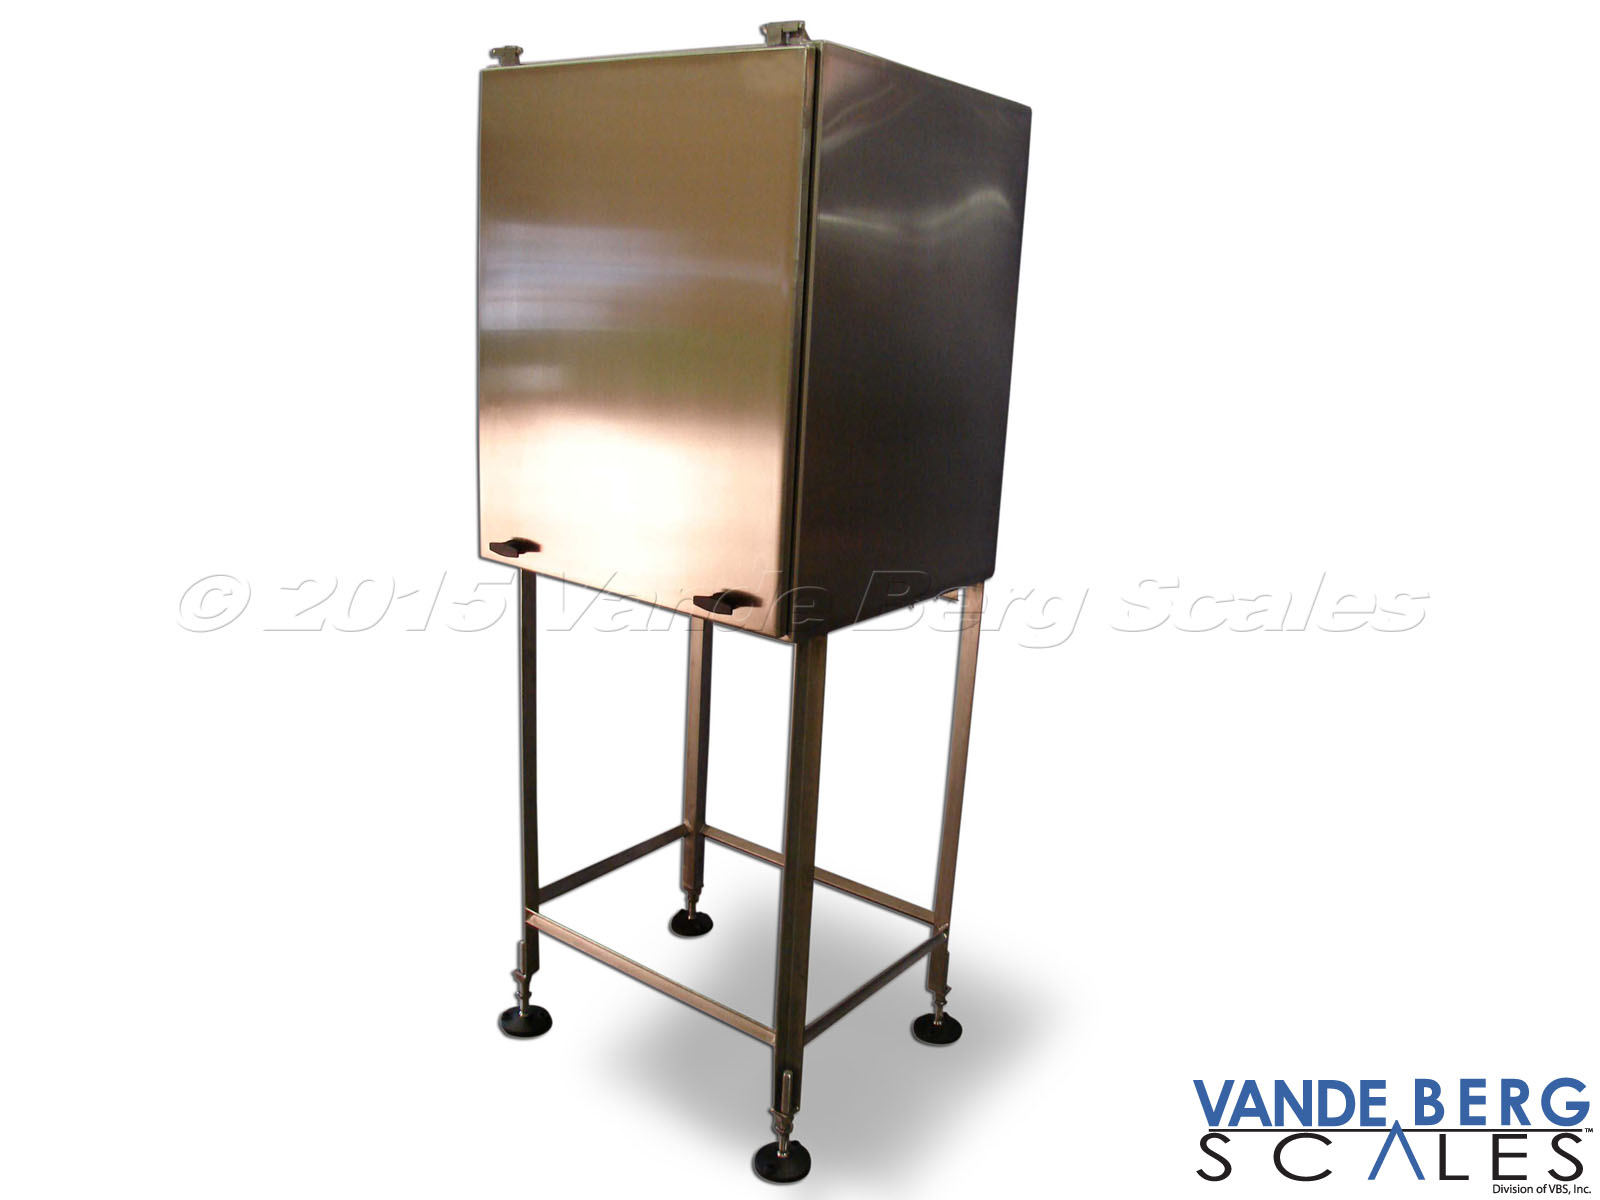 Stainless steel stand with NEMA-4X washdown enclosure